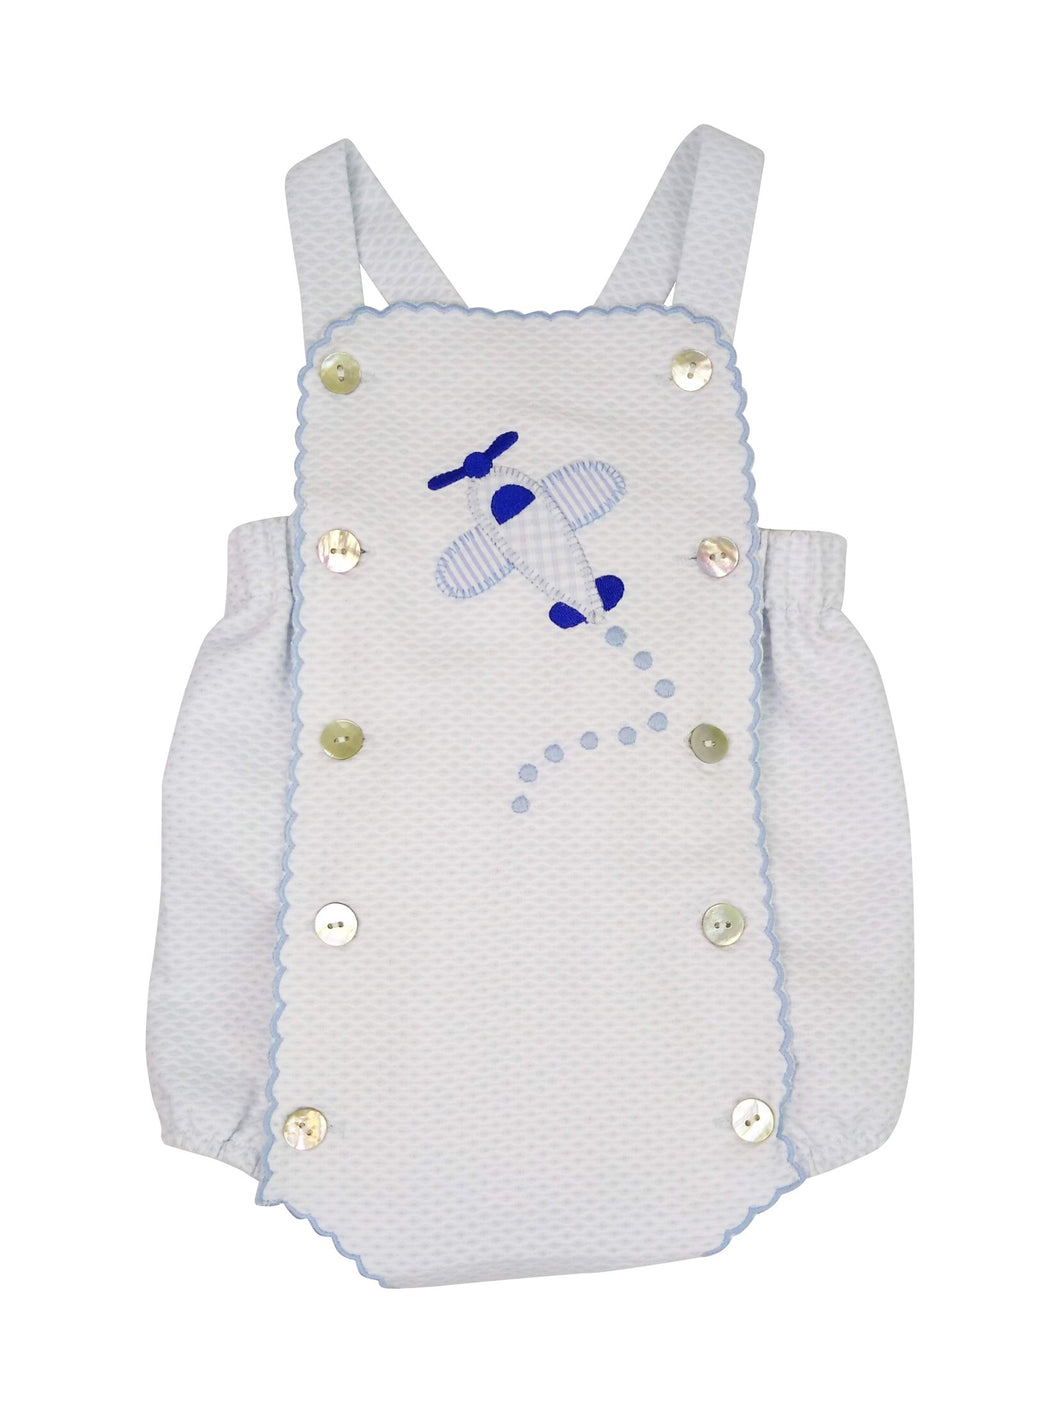 Carson Baby Boy Airplane Sunsuit